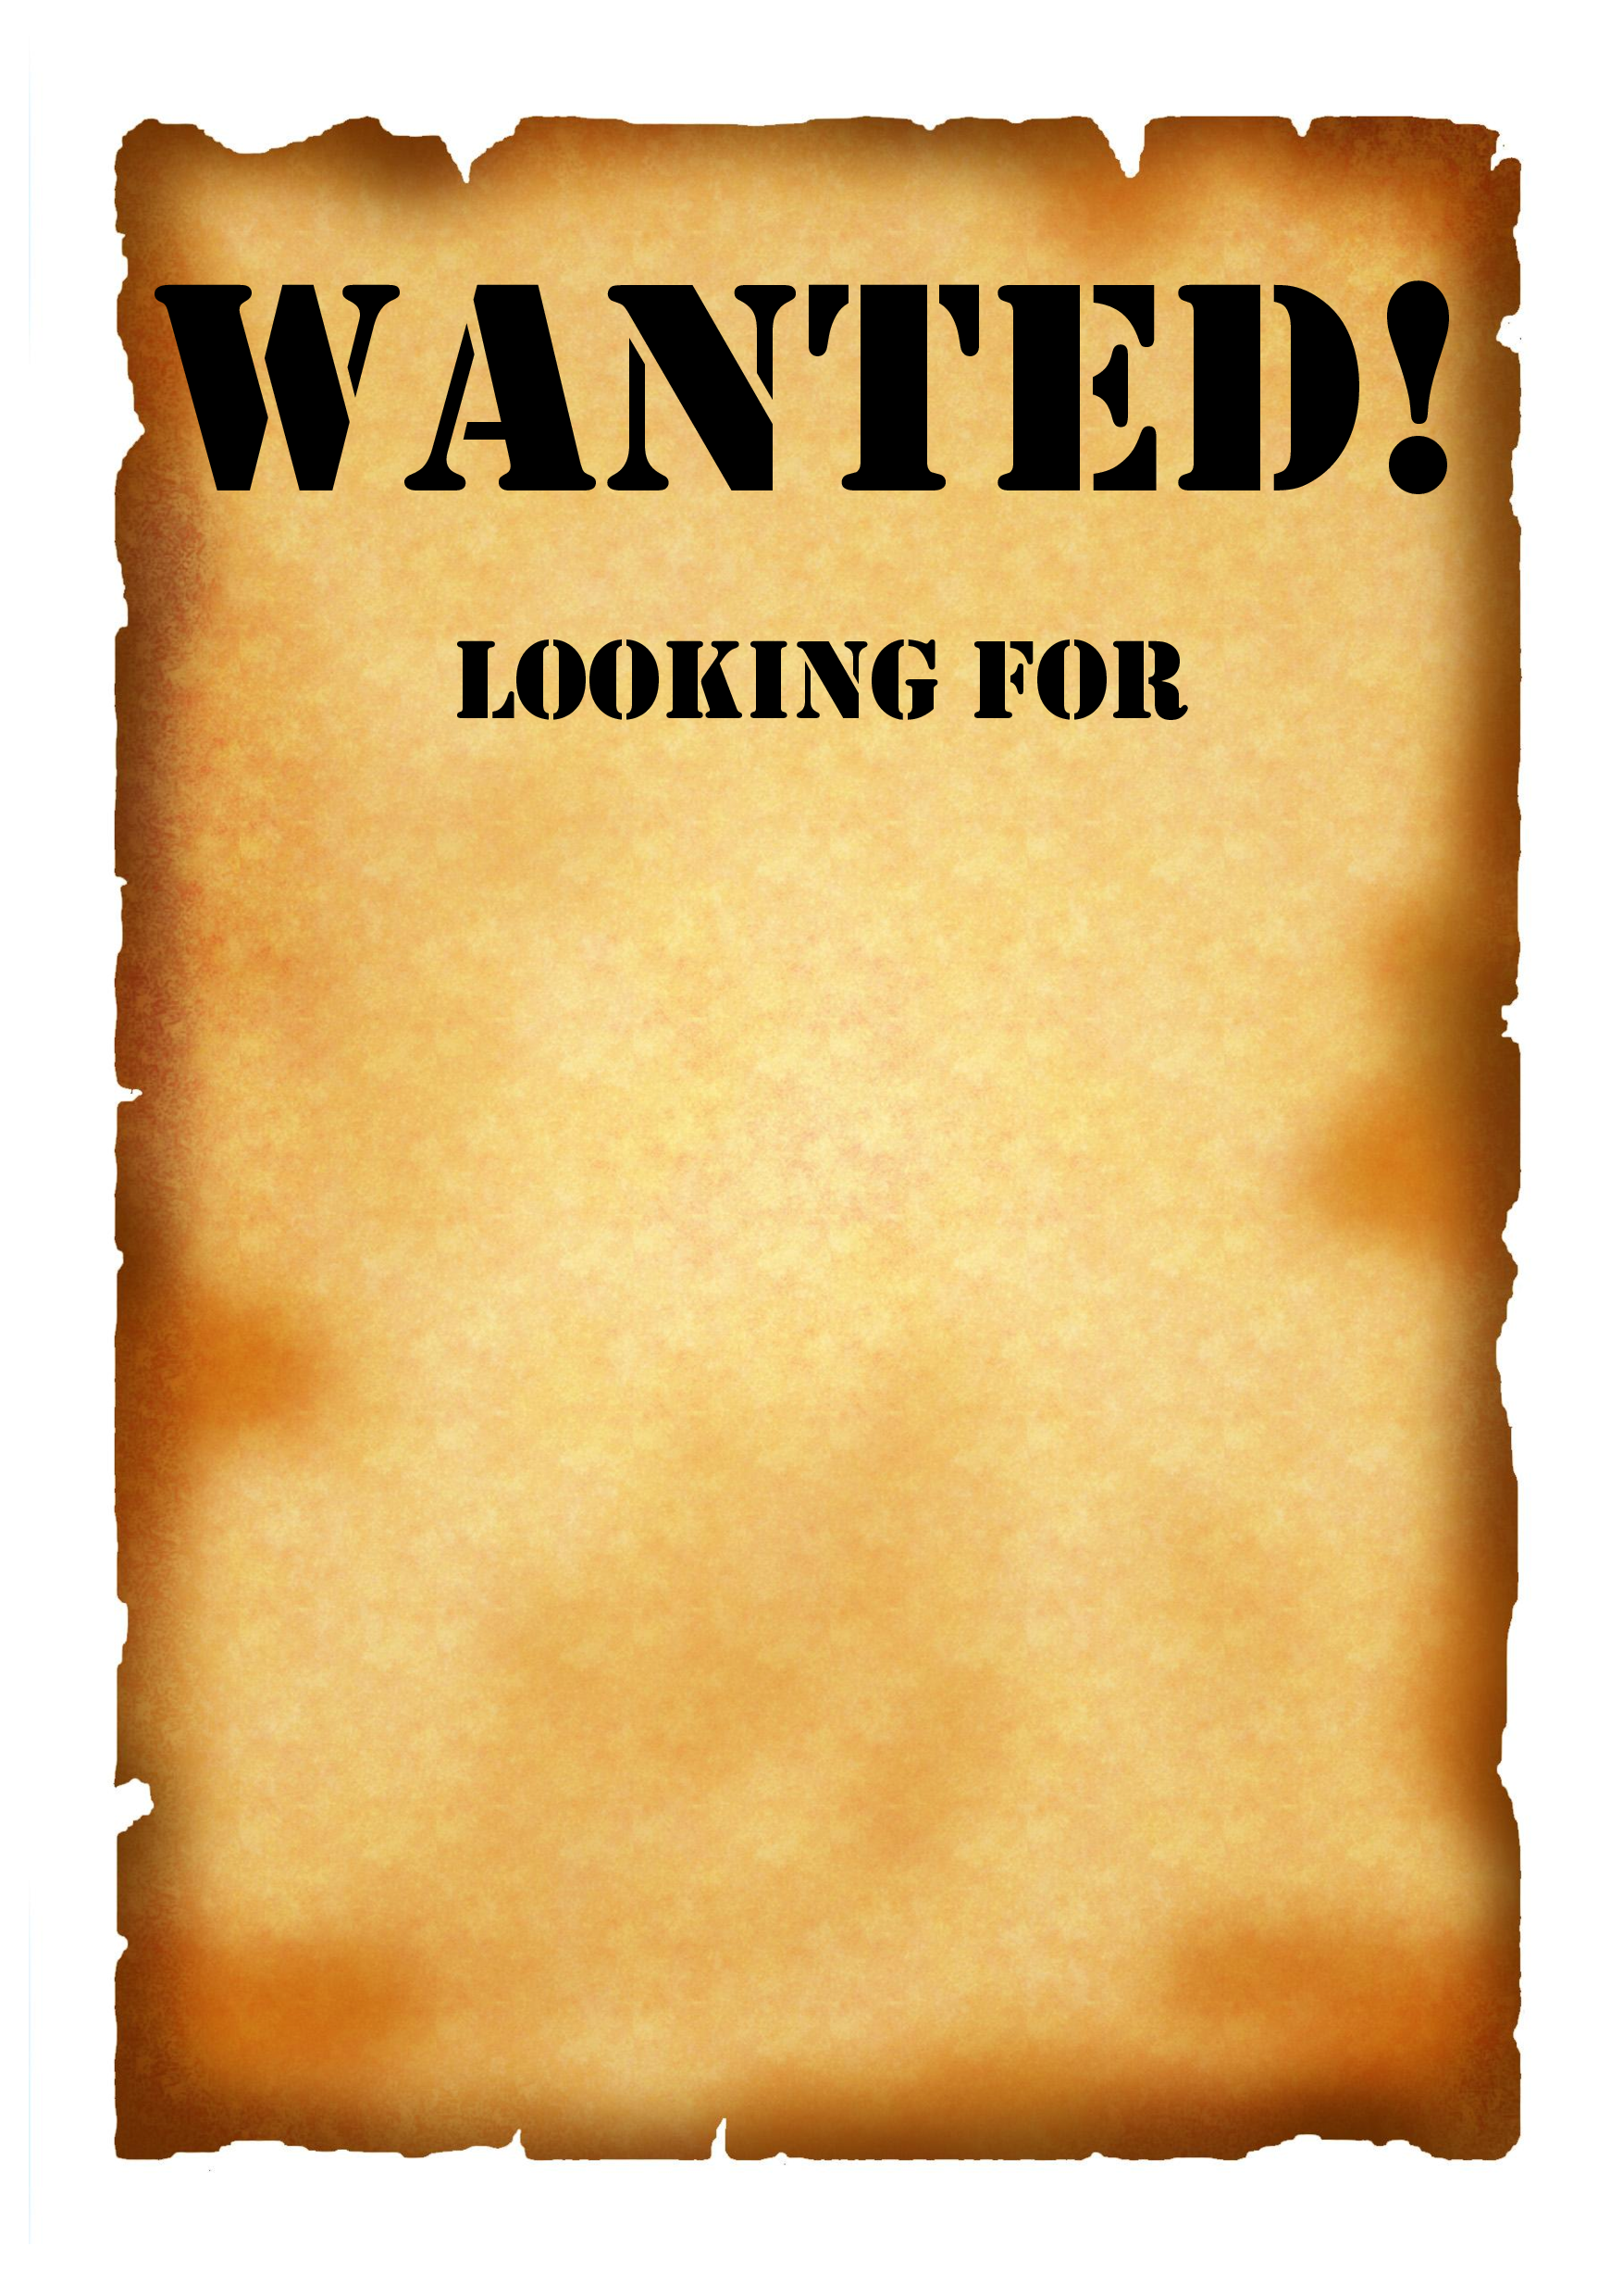 Wanted wallpaper wallpapersafari for Free wanted poster template